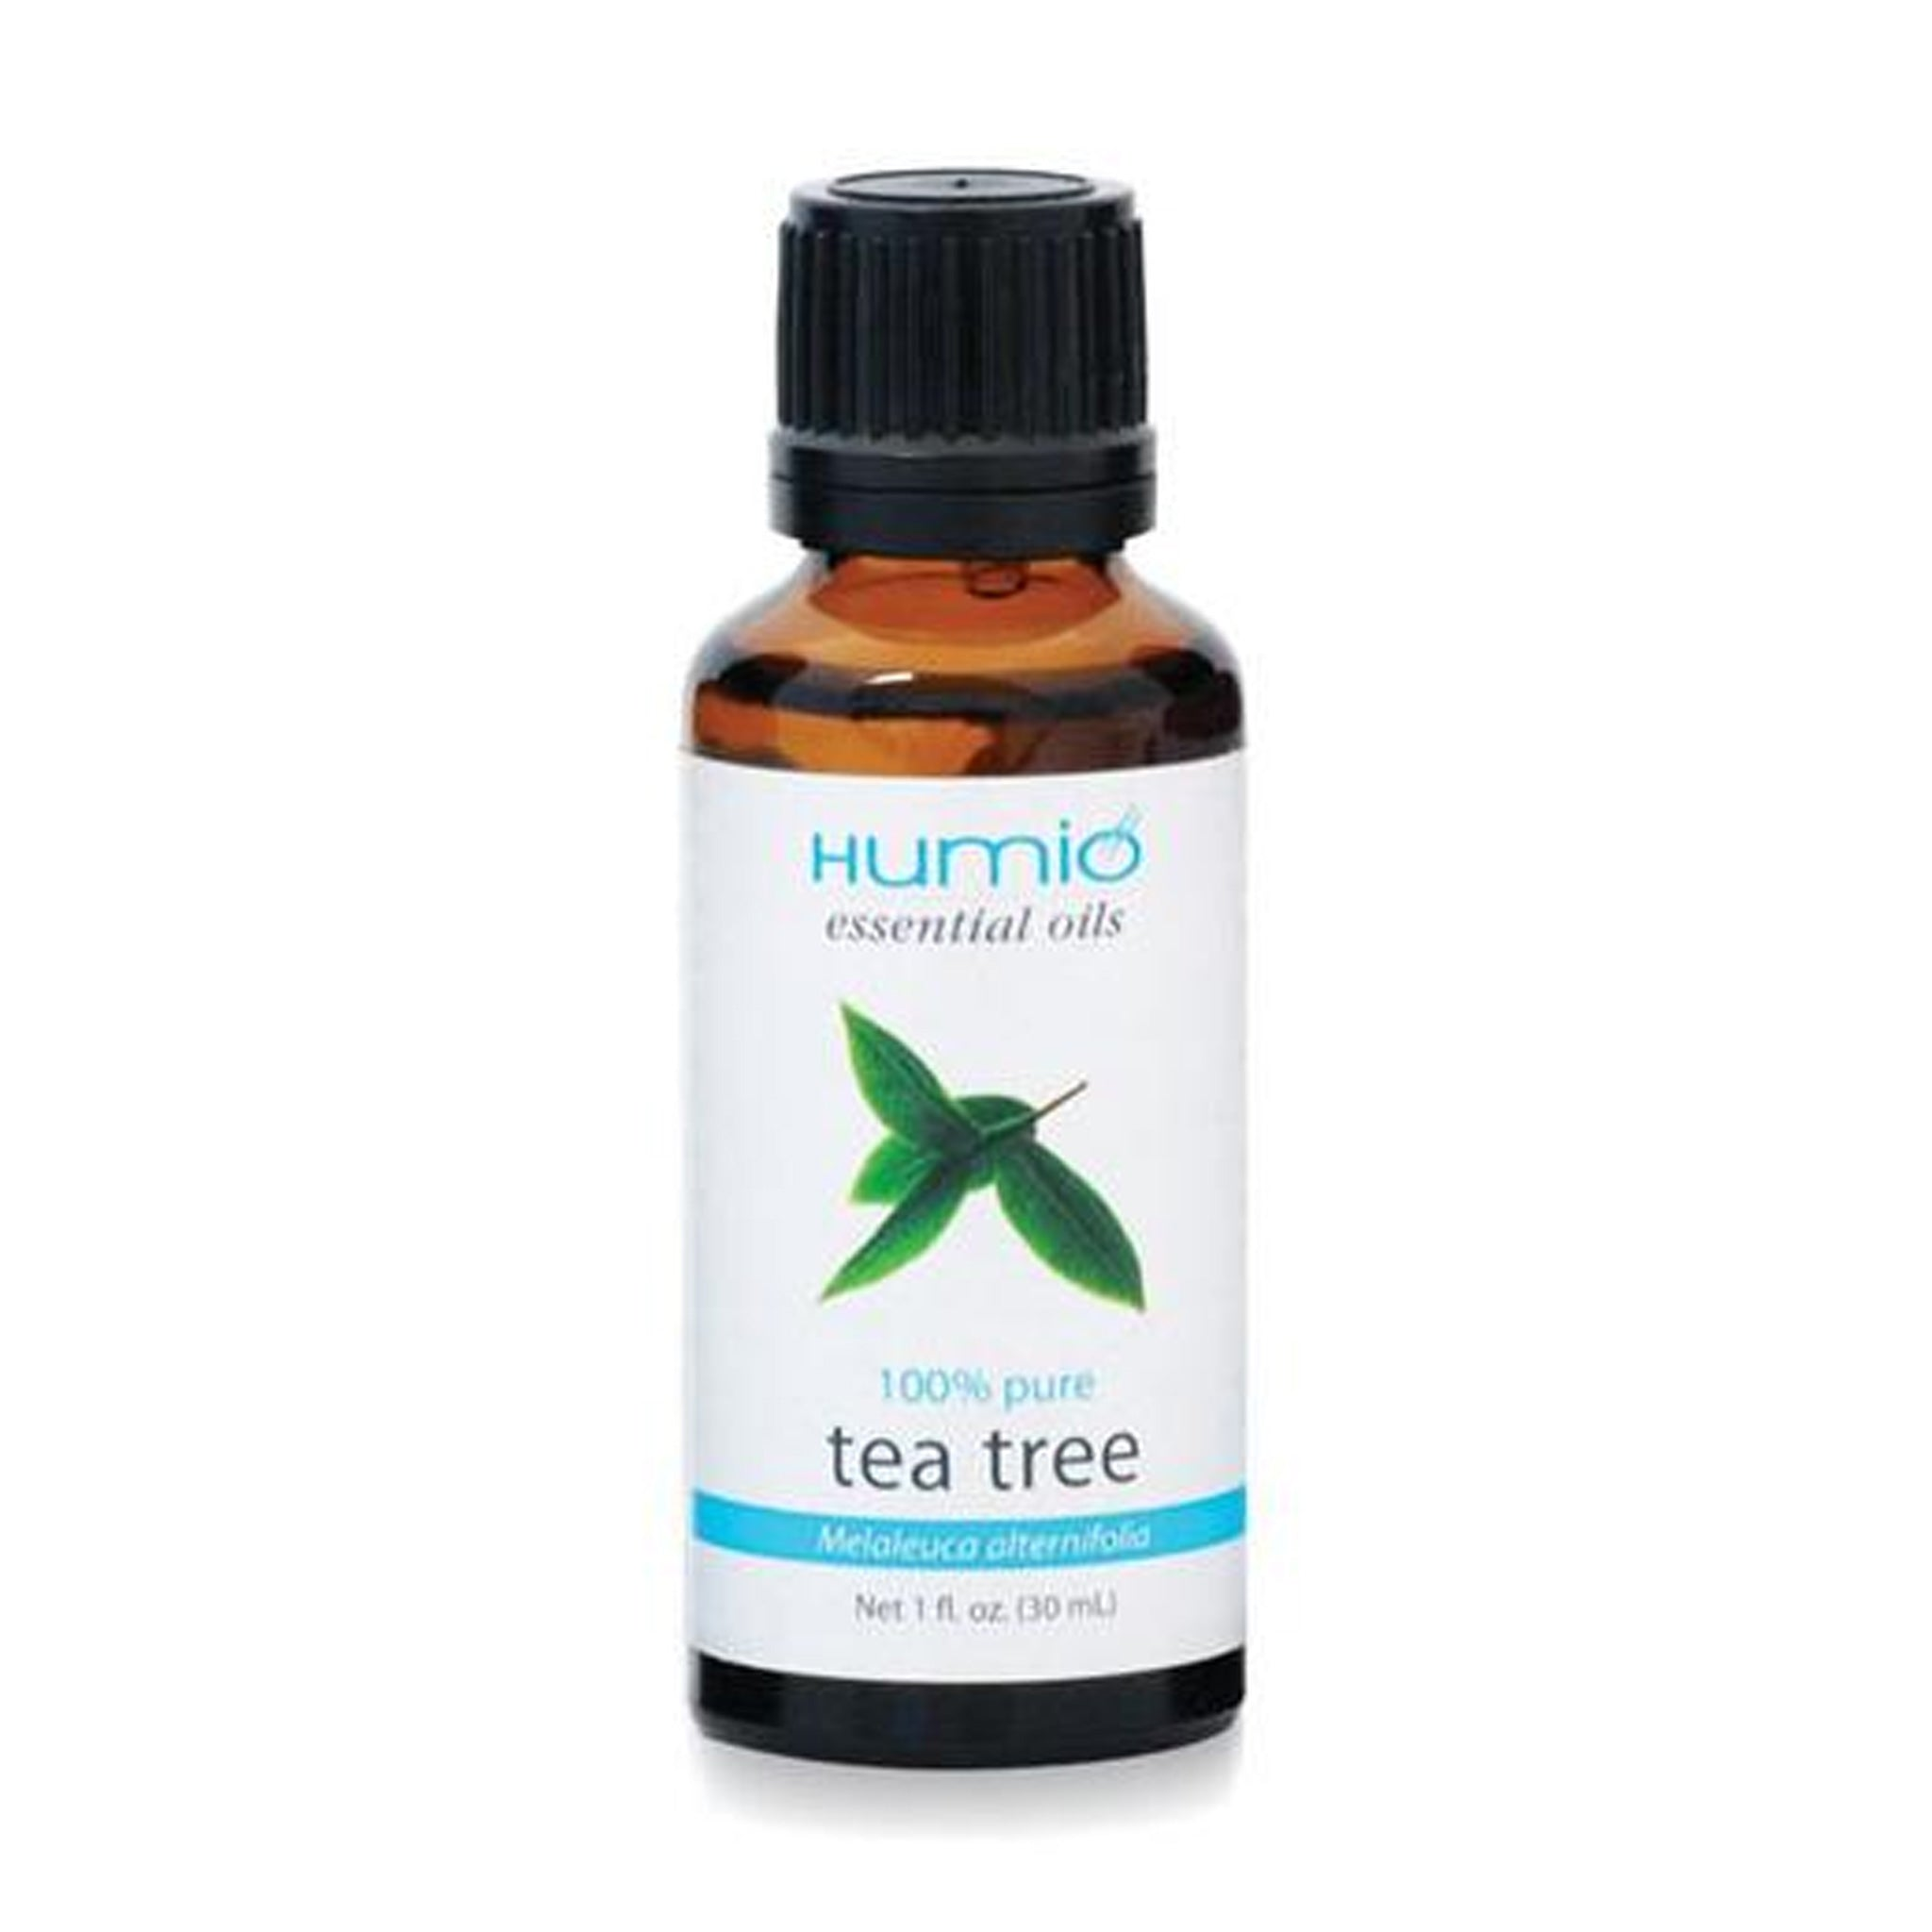 Humio Tea Tree Essential Oil (1 oz / 30mL) HU-35TE - Tribest